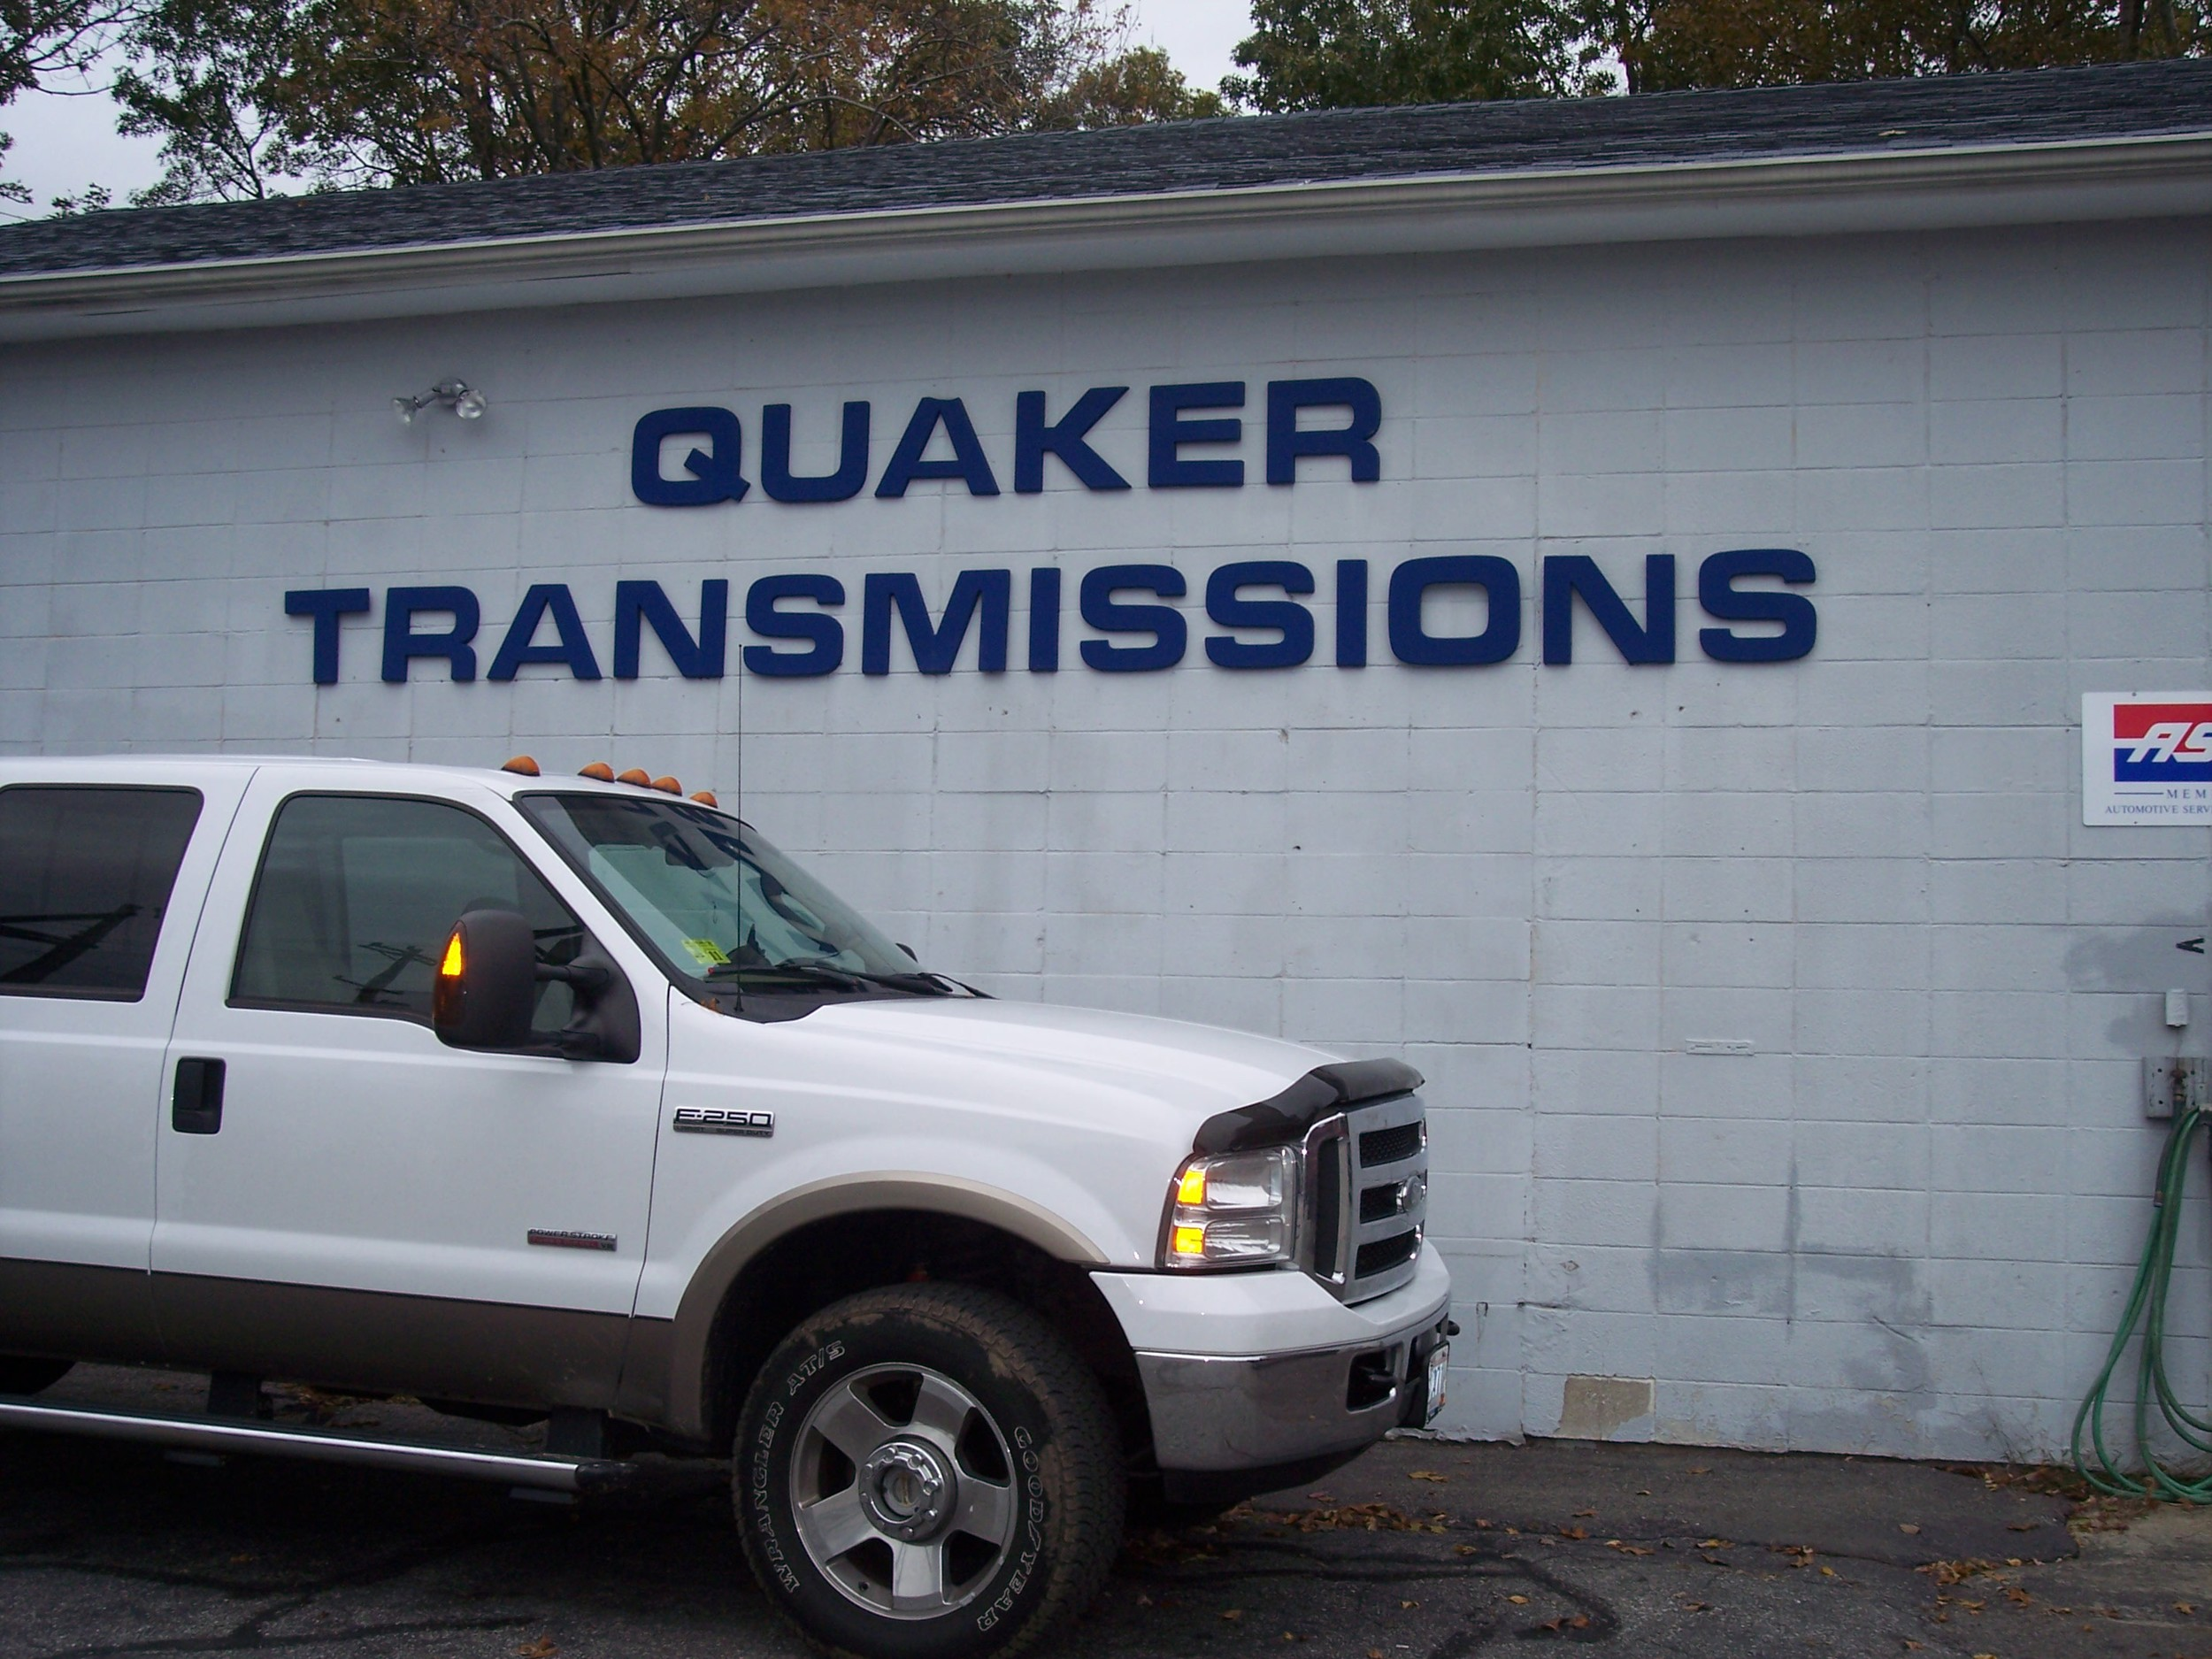 Looking for Quaker Transmissions? Watch for the bold sign of this longstanding landmark on Tiogue Avenue in West Warwick ~ you are in the right place. Call 826-2800 today for your appointment.